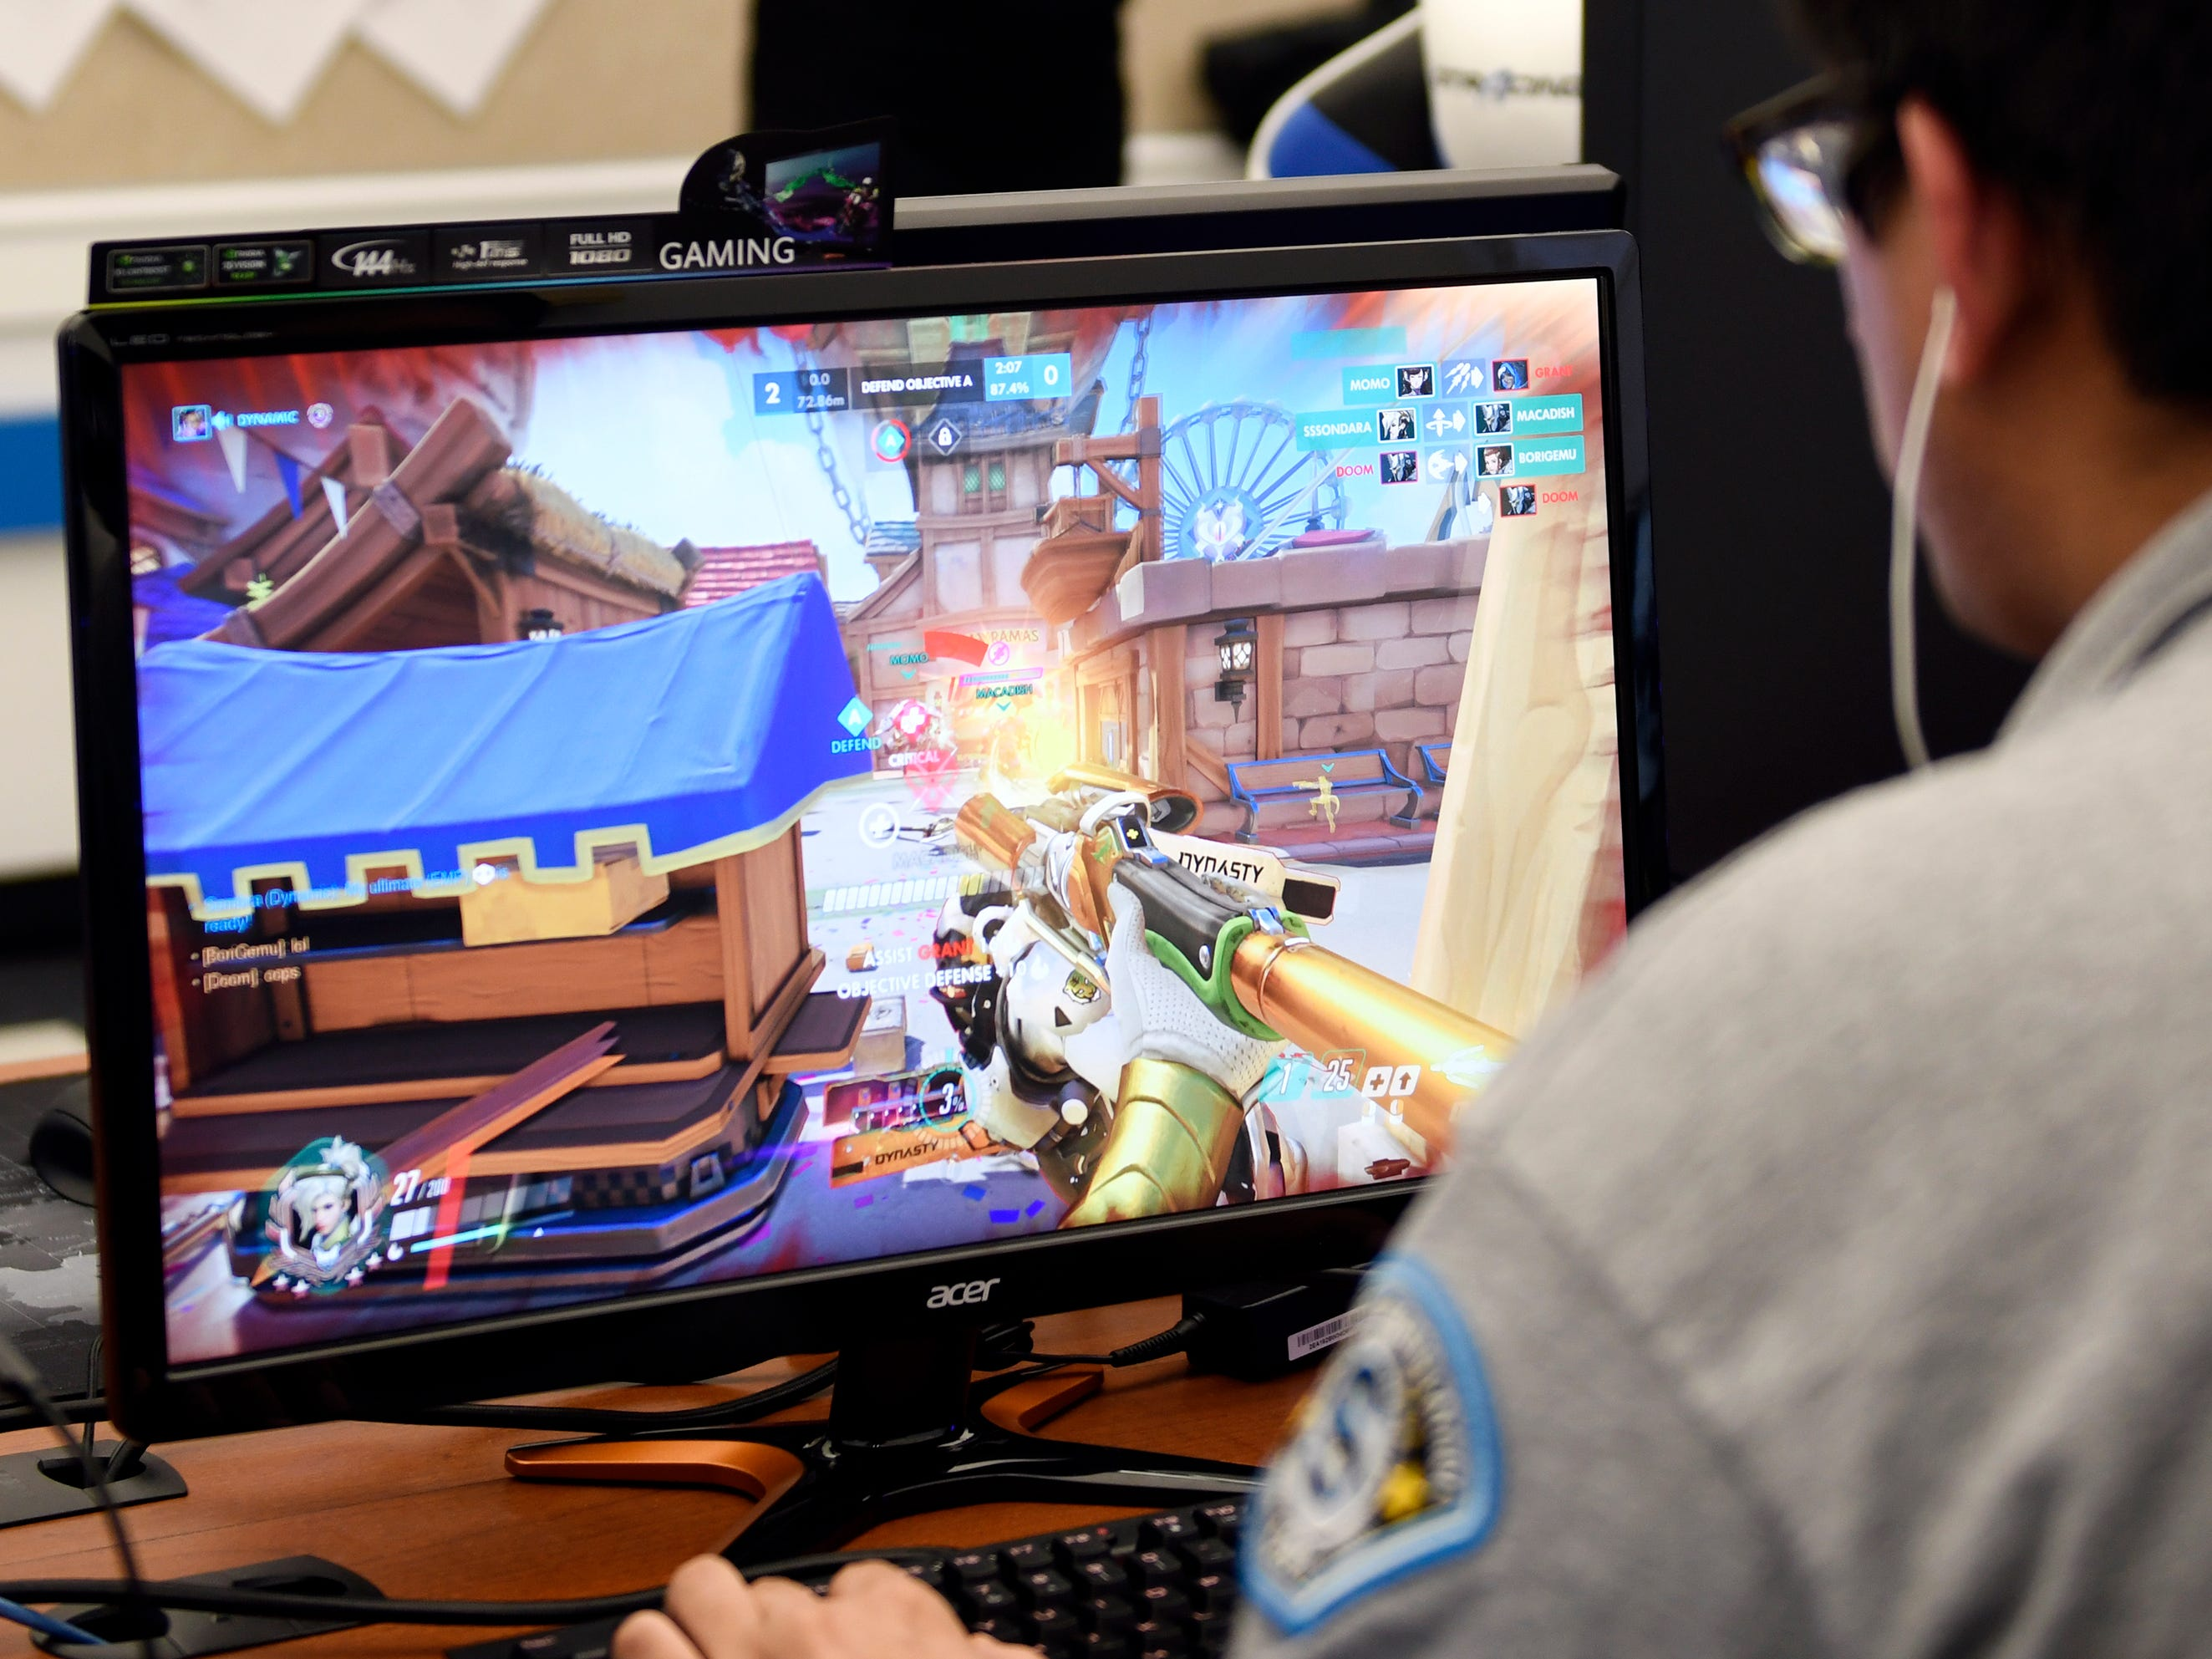 Stockton students refine their gaming skills in the university's new Esports facility on Tuesday, Feb. 26, 2019.